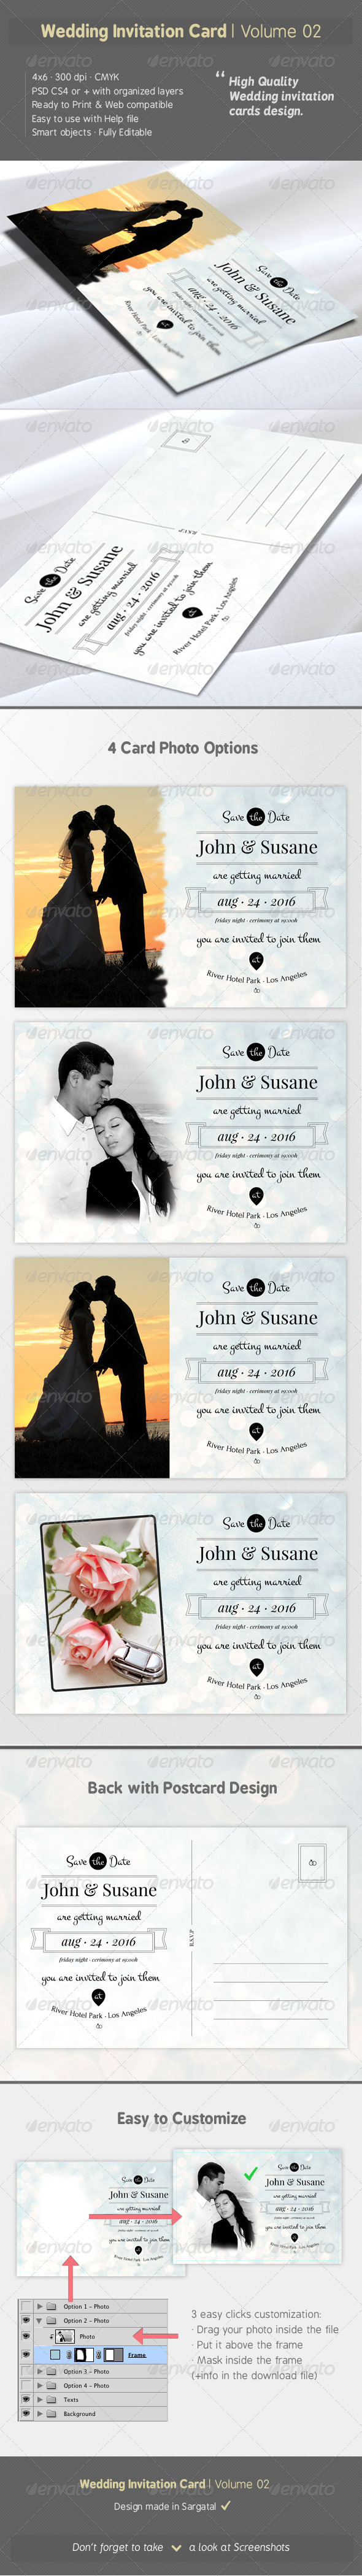 GraphicRiver Wedding Invitation Card Volume 02 6724571